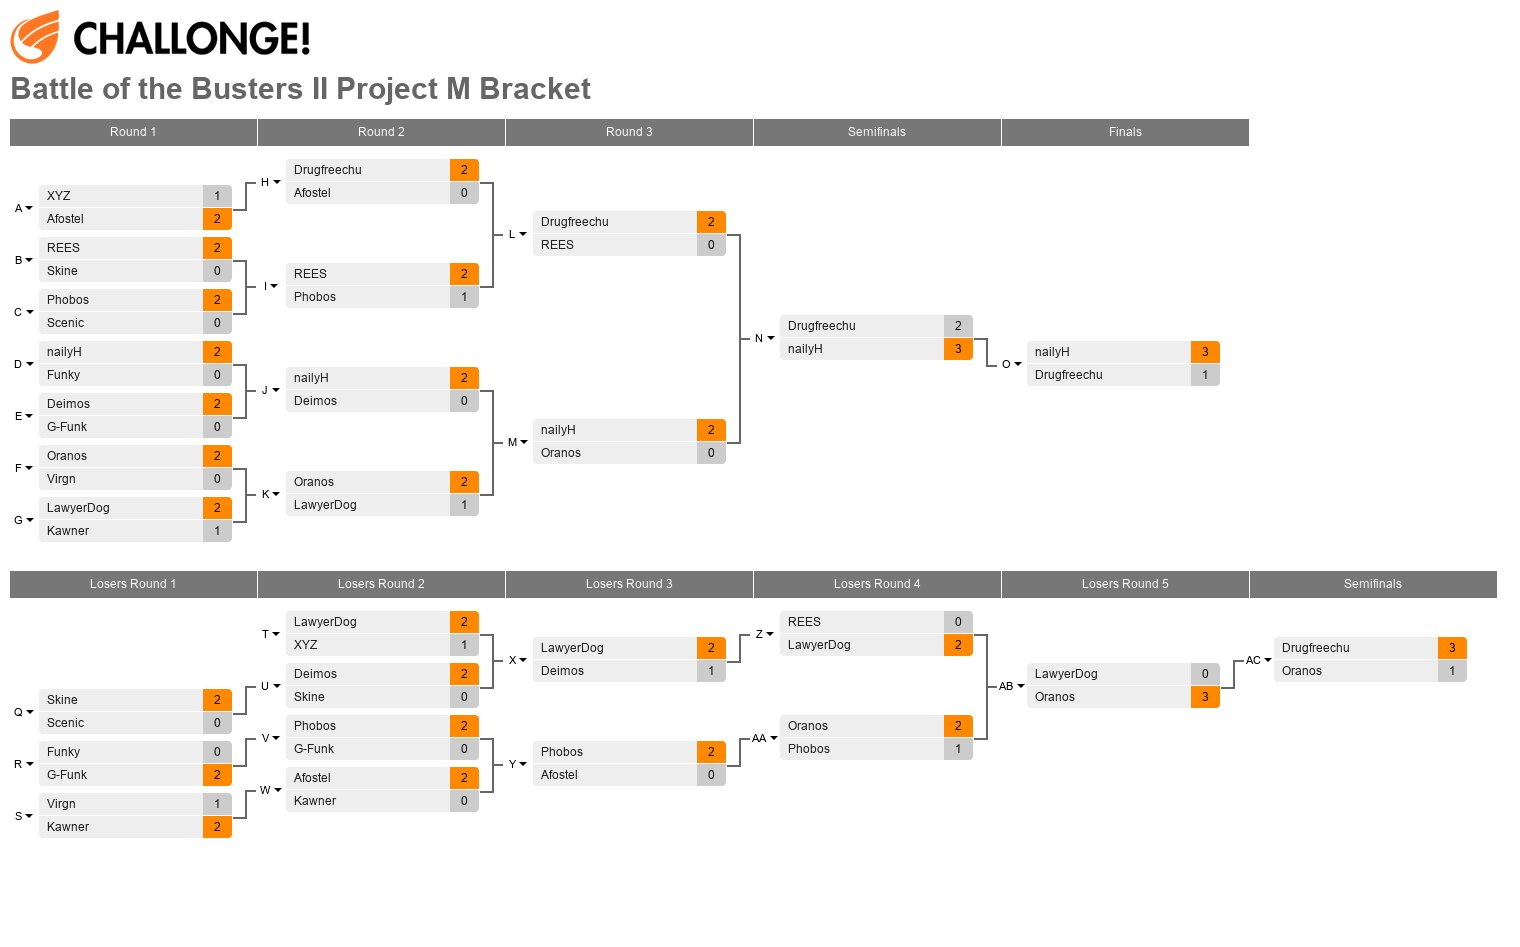 Battle of the Busters 2: Project M Bracket